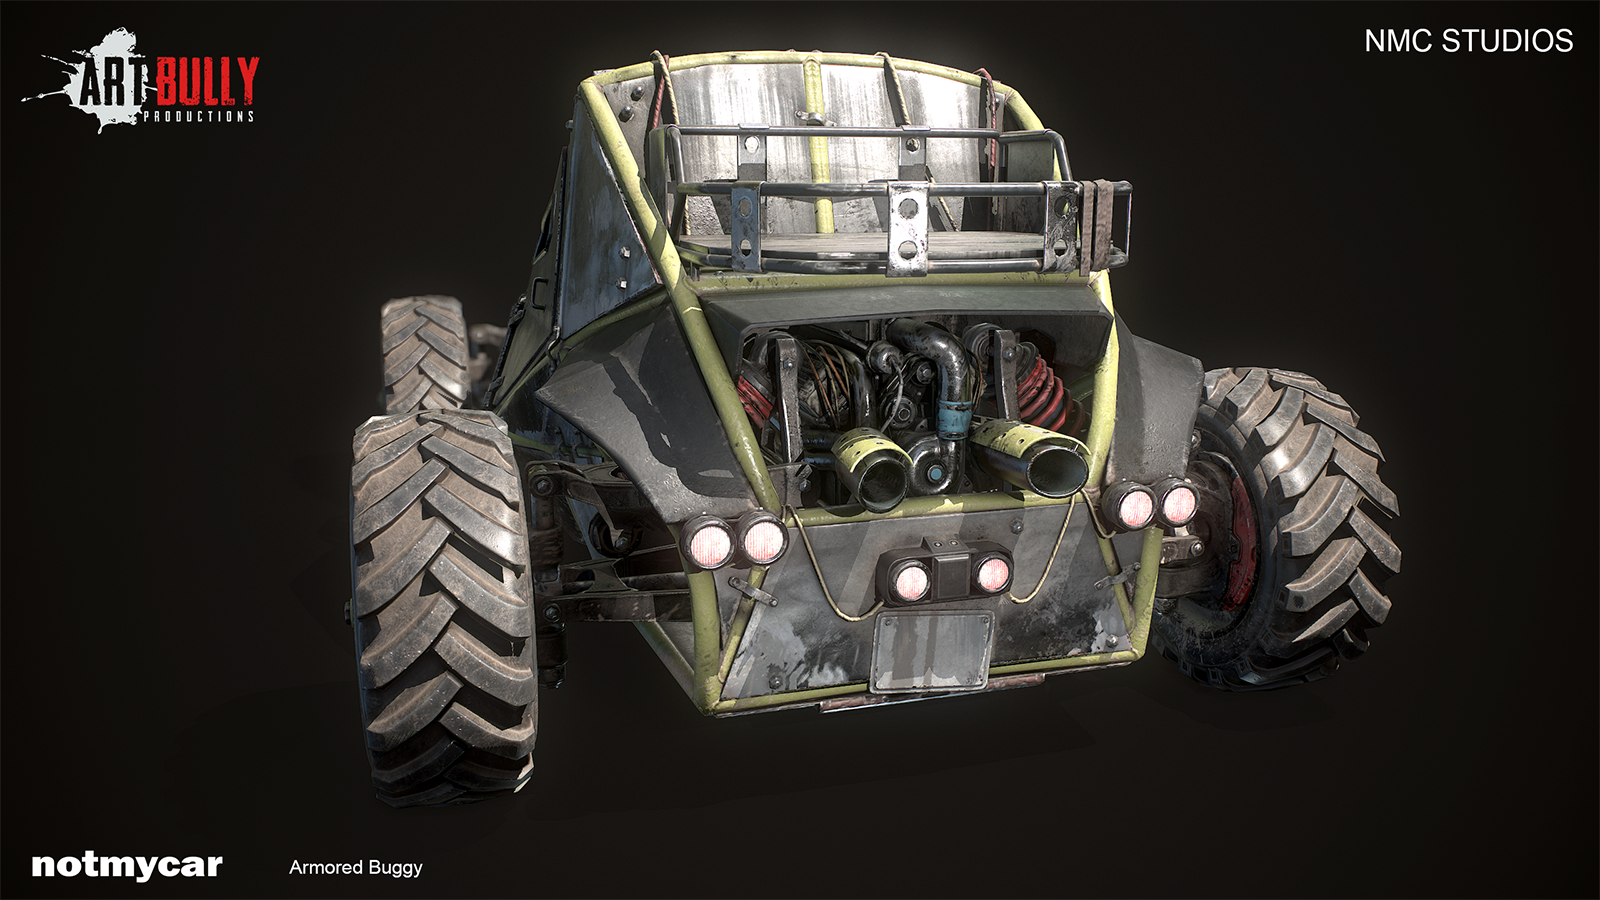 Artbully.co_NMC_Armored_Buggy_Engine_Low.png